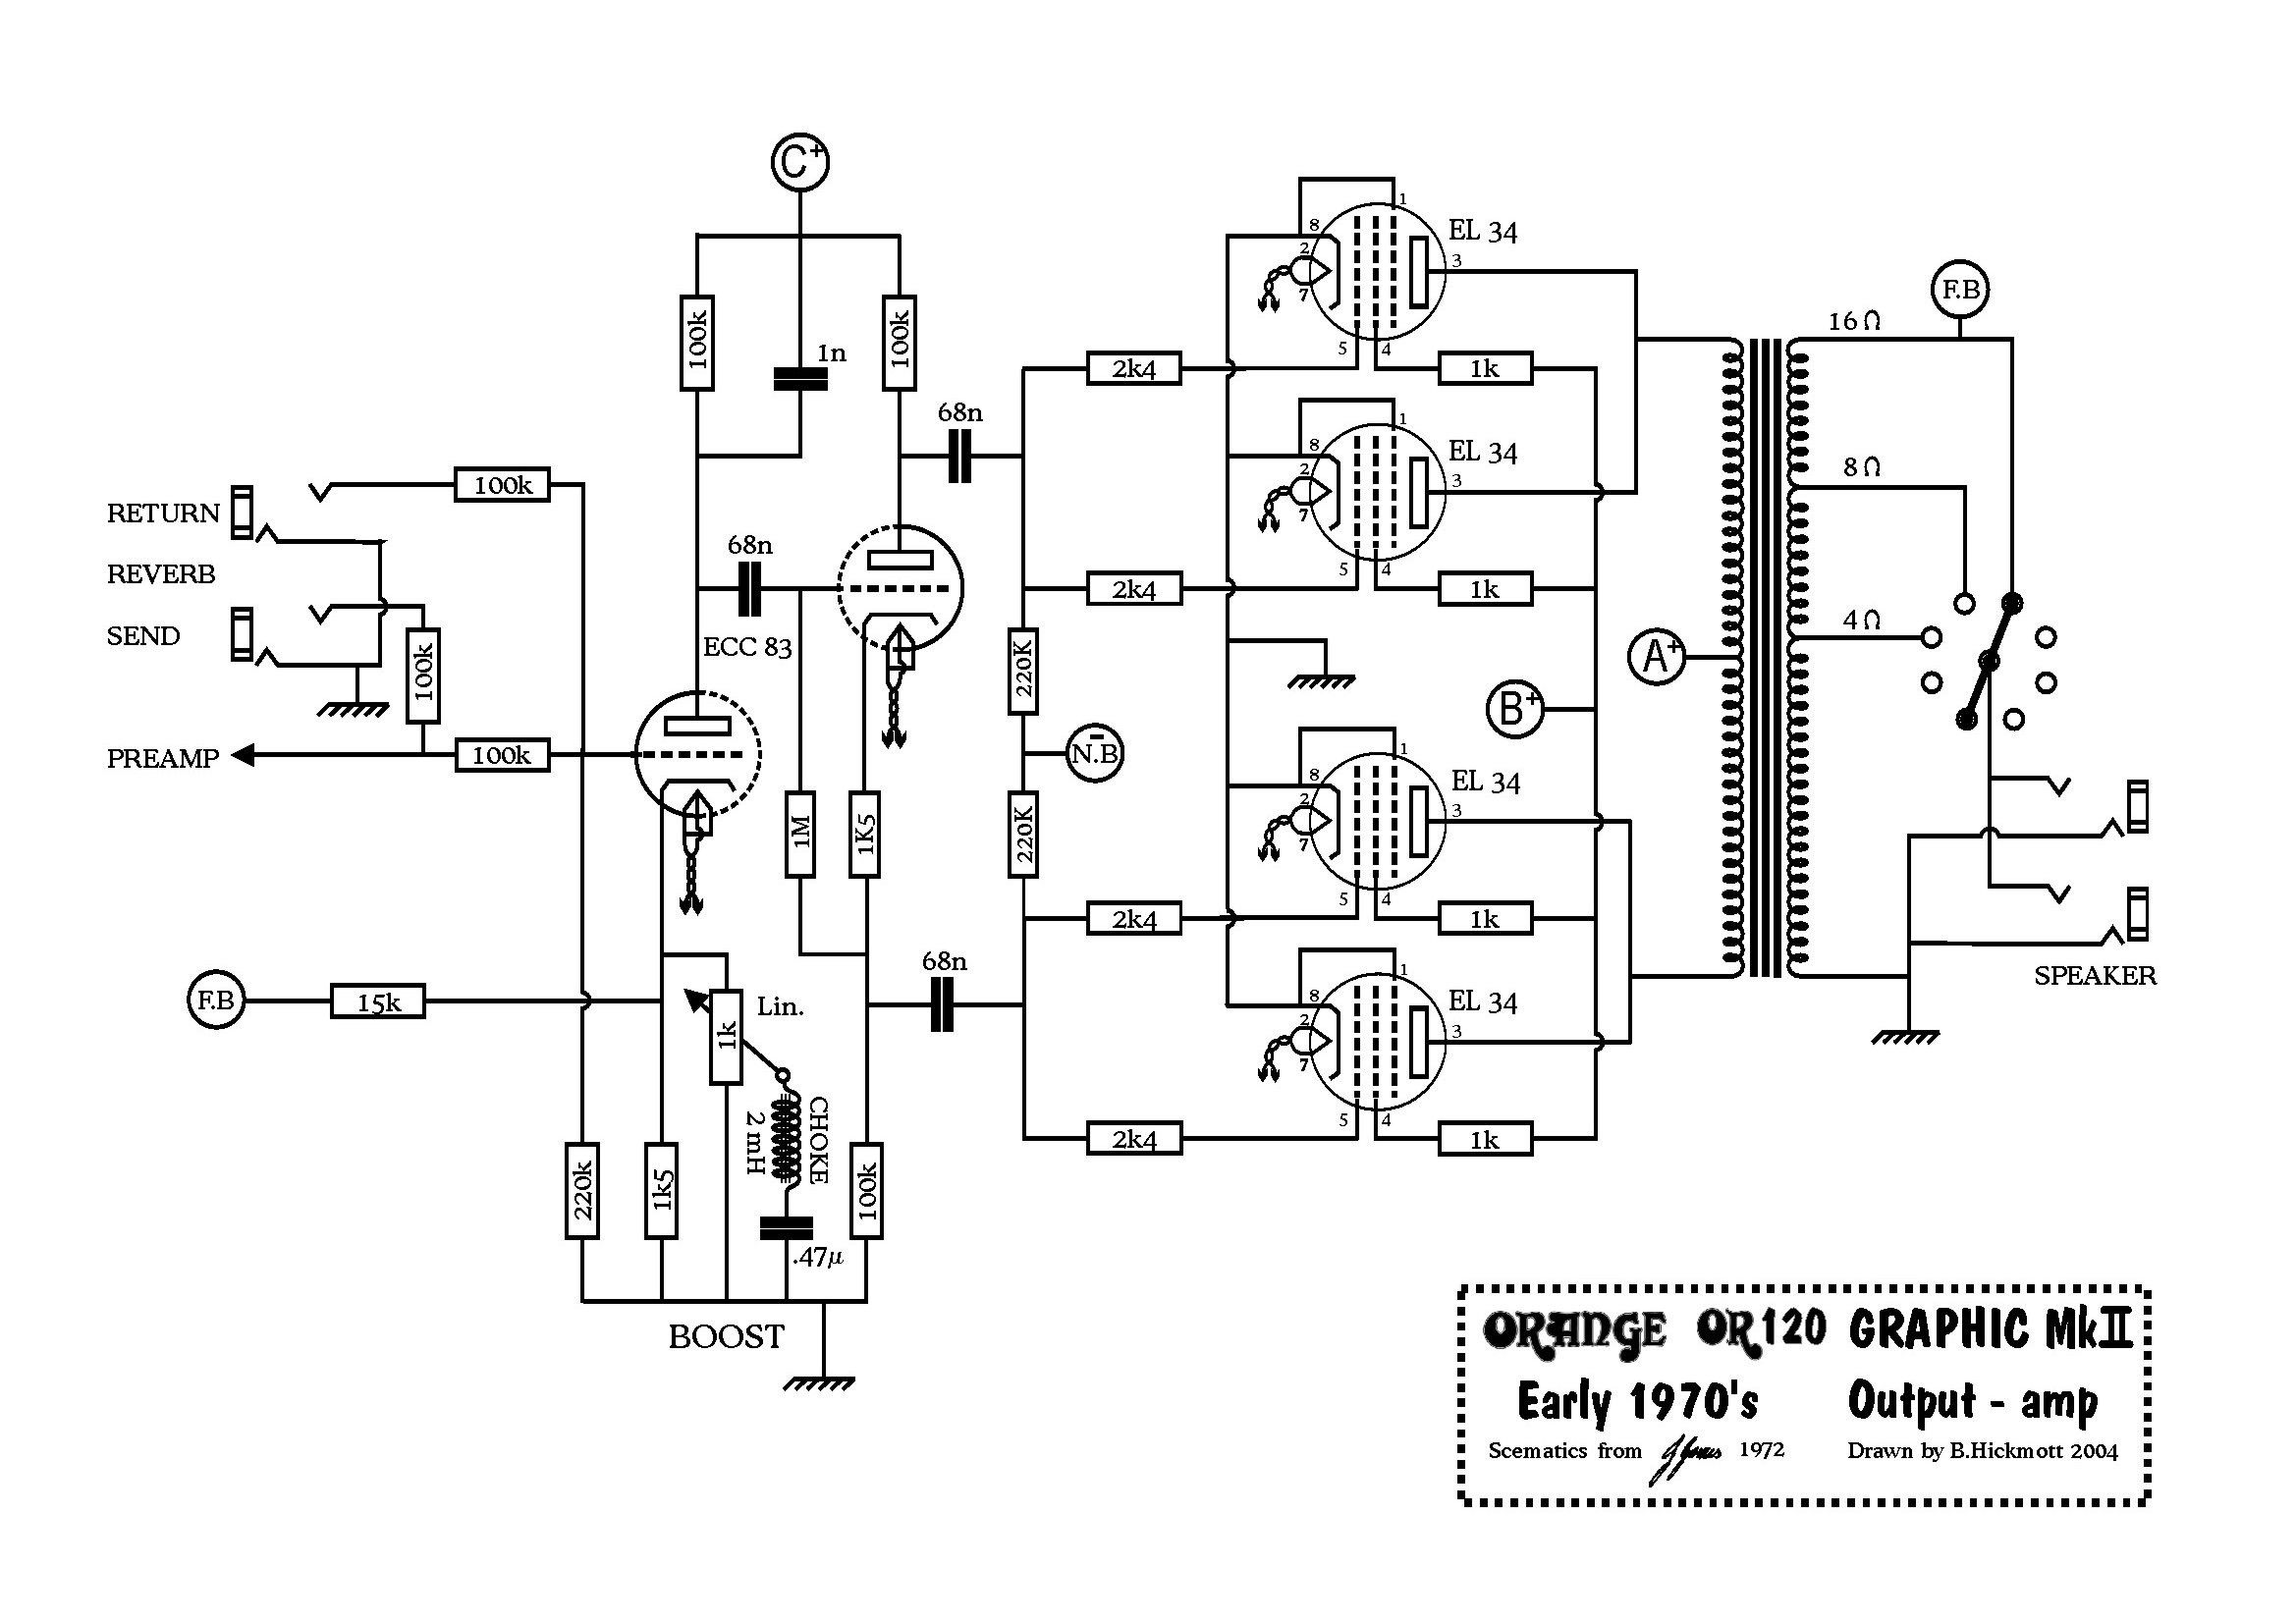 Guitar Amplifier Circuit Diagram With Pcb Layout New The Orange Amp Mods Page